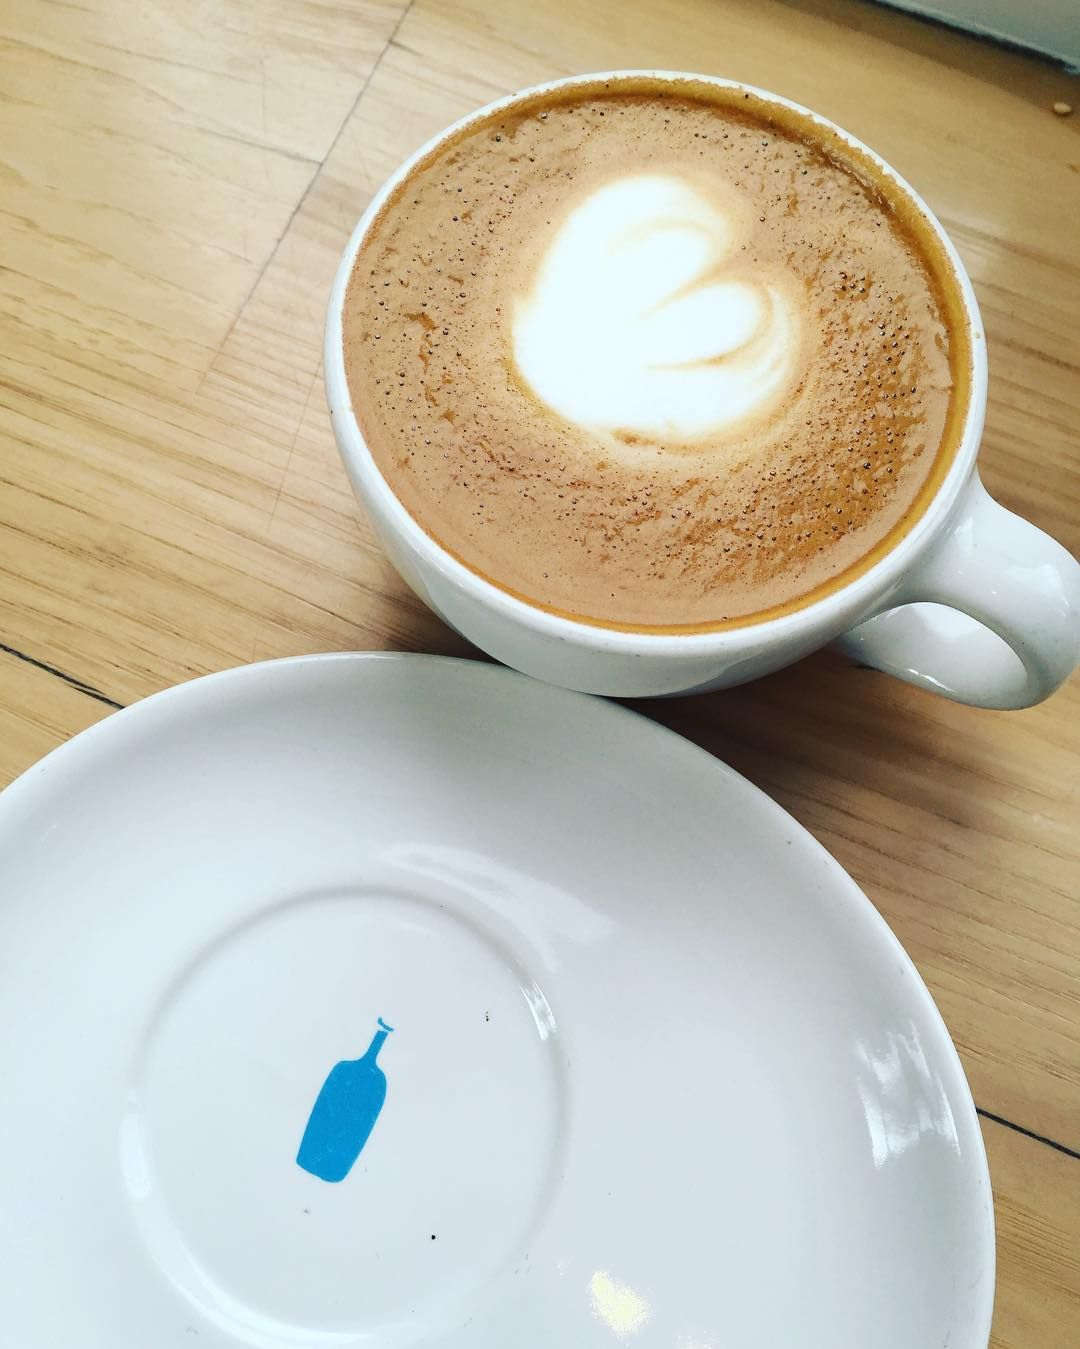 #bluebottle #capuccino By Chjourney